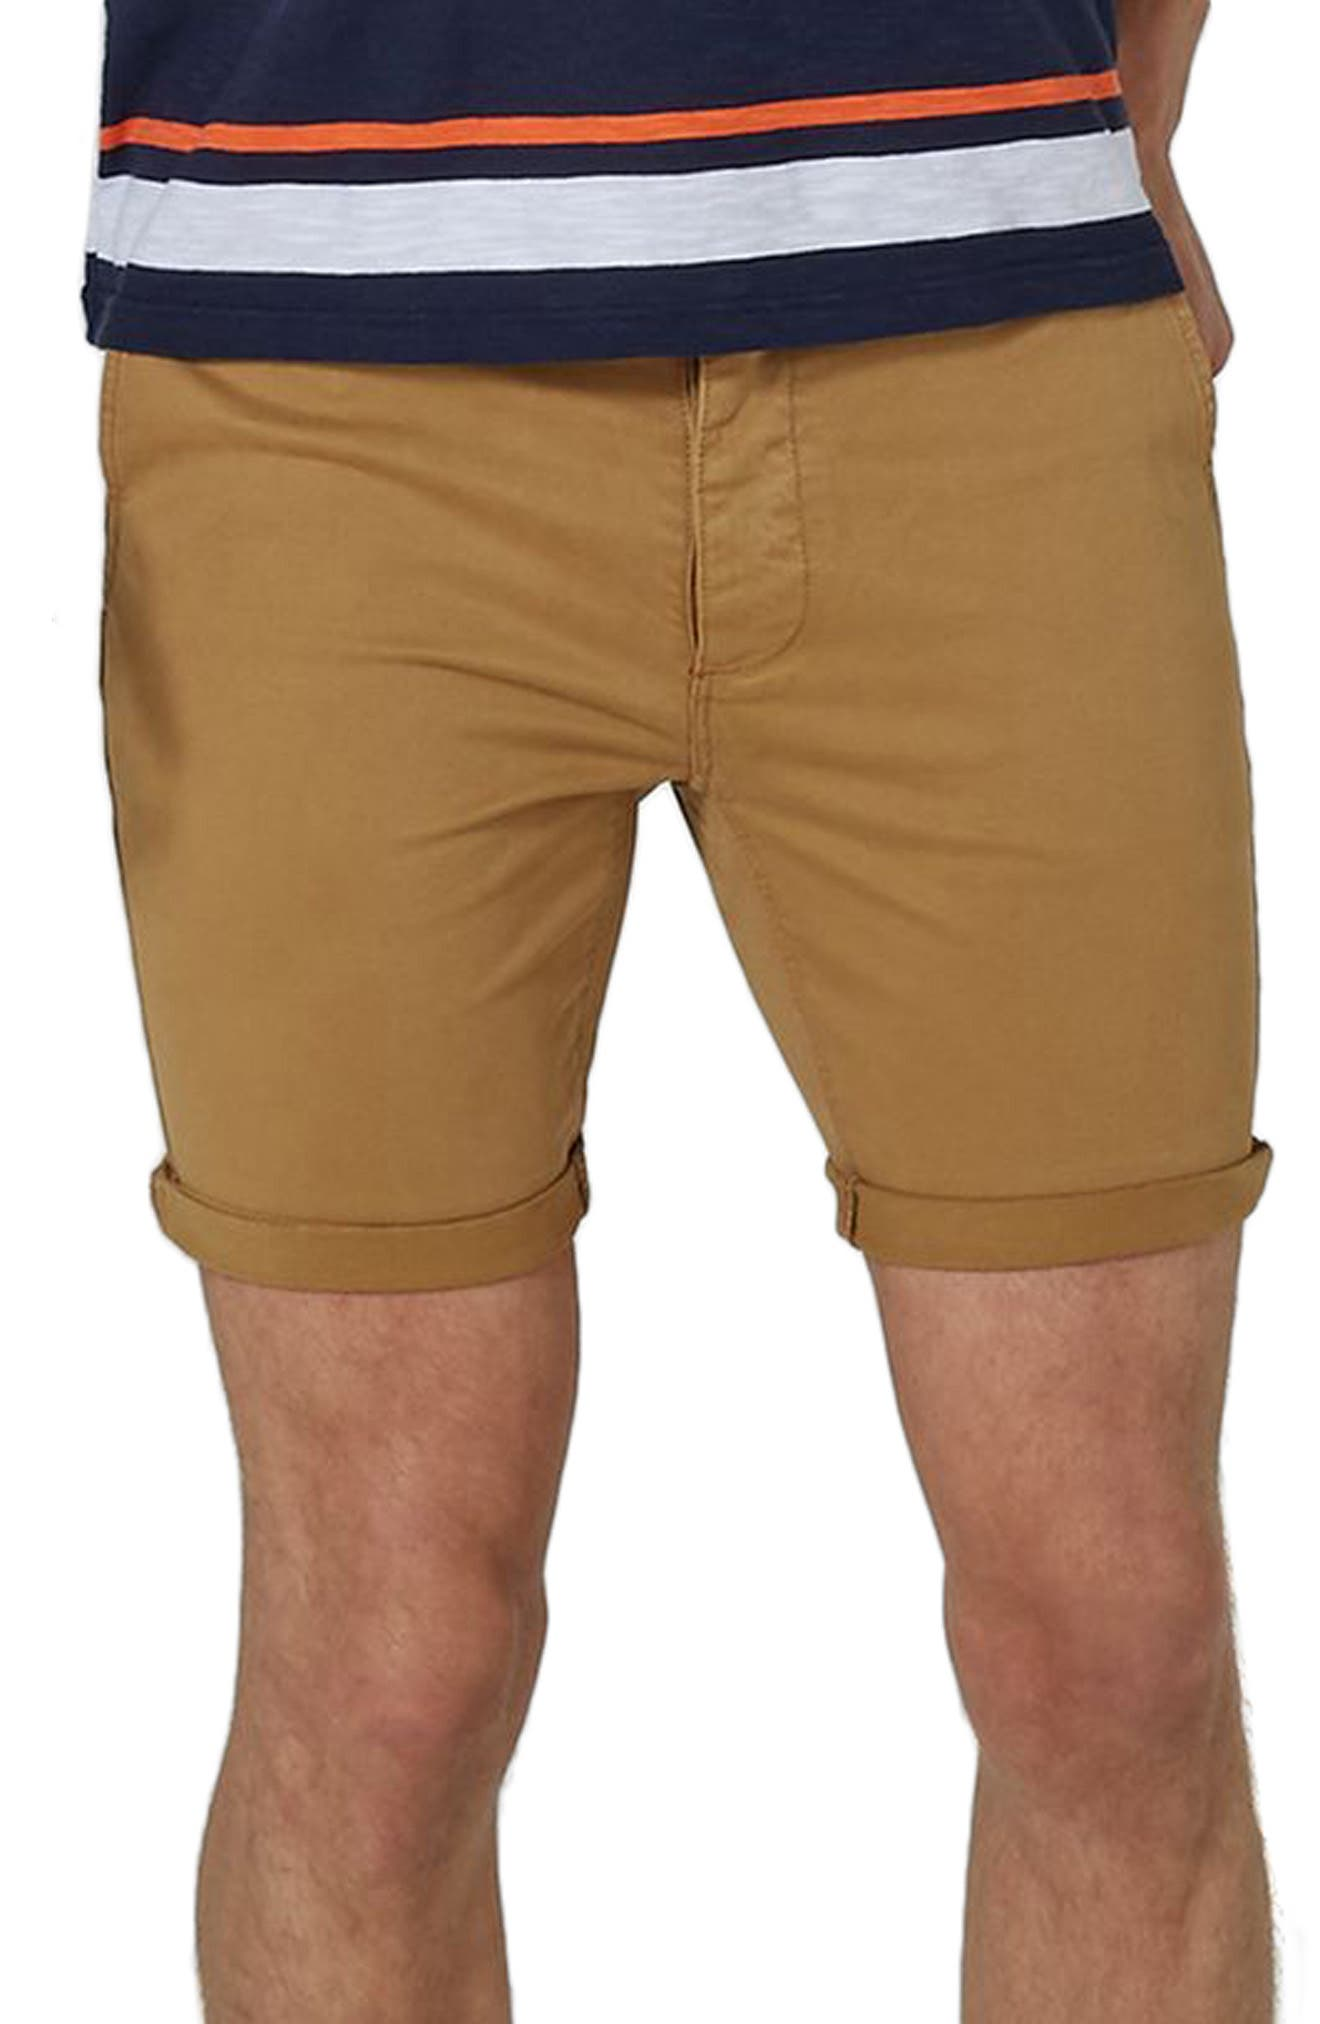 Stretch Skinny Chino Shorts,                         Main,                         color, Yellow